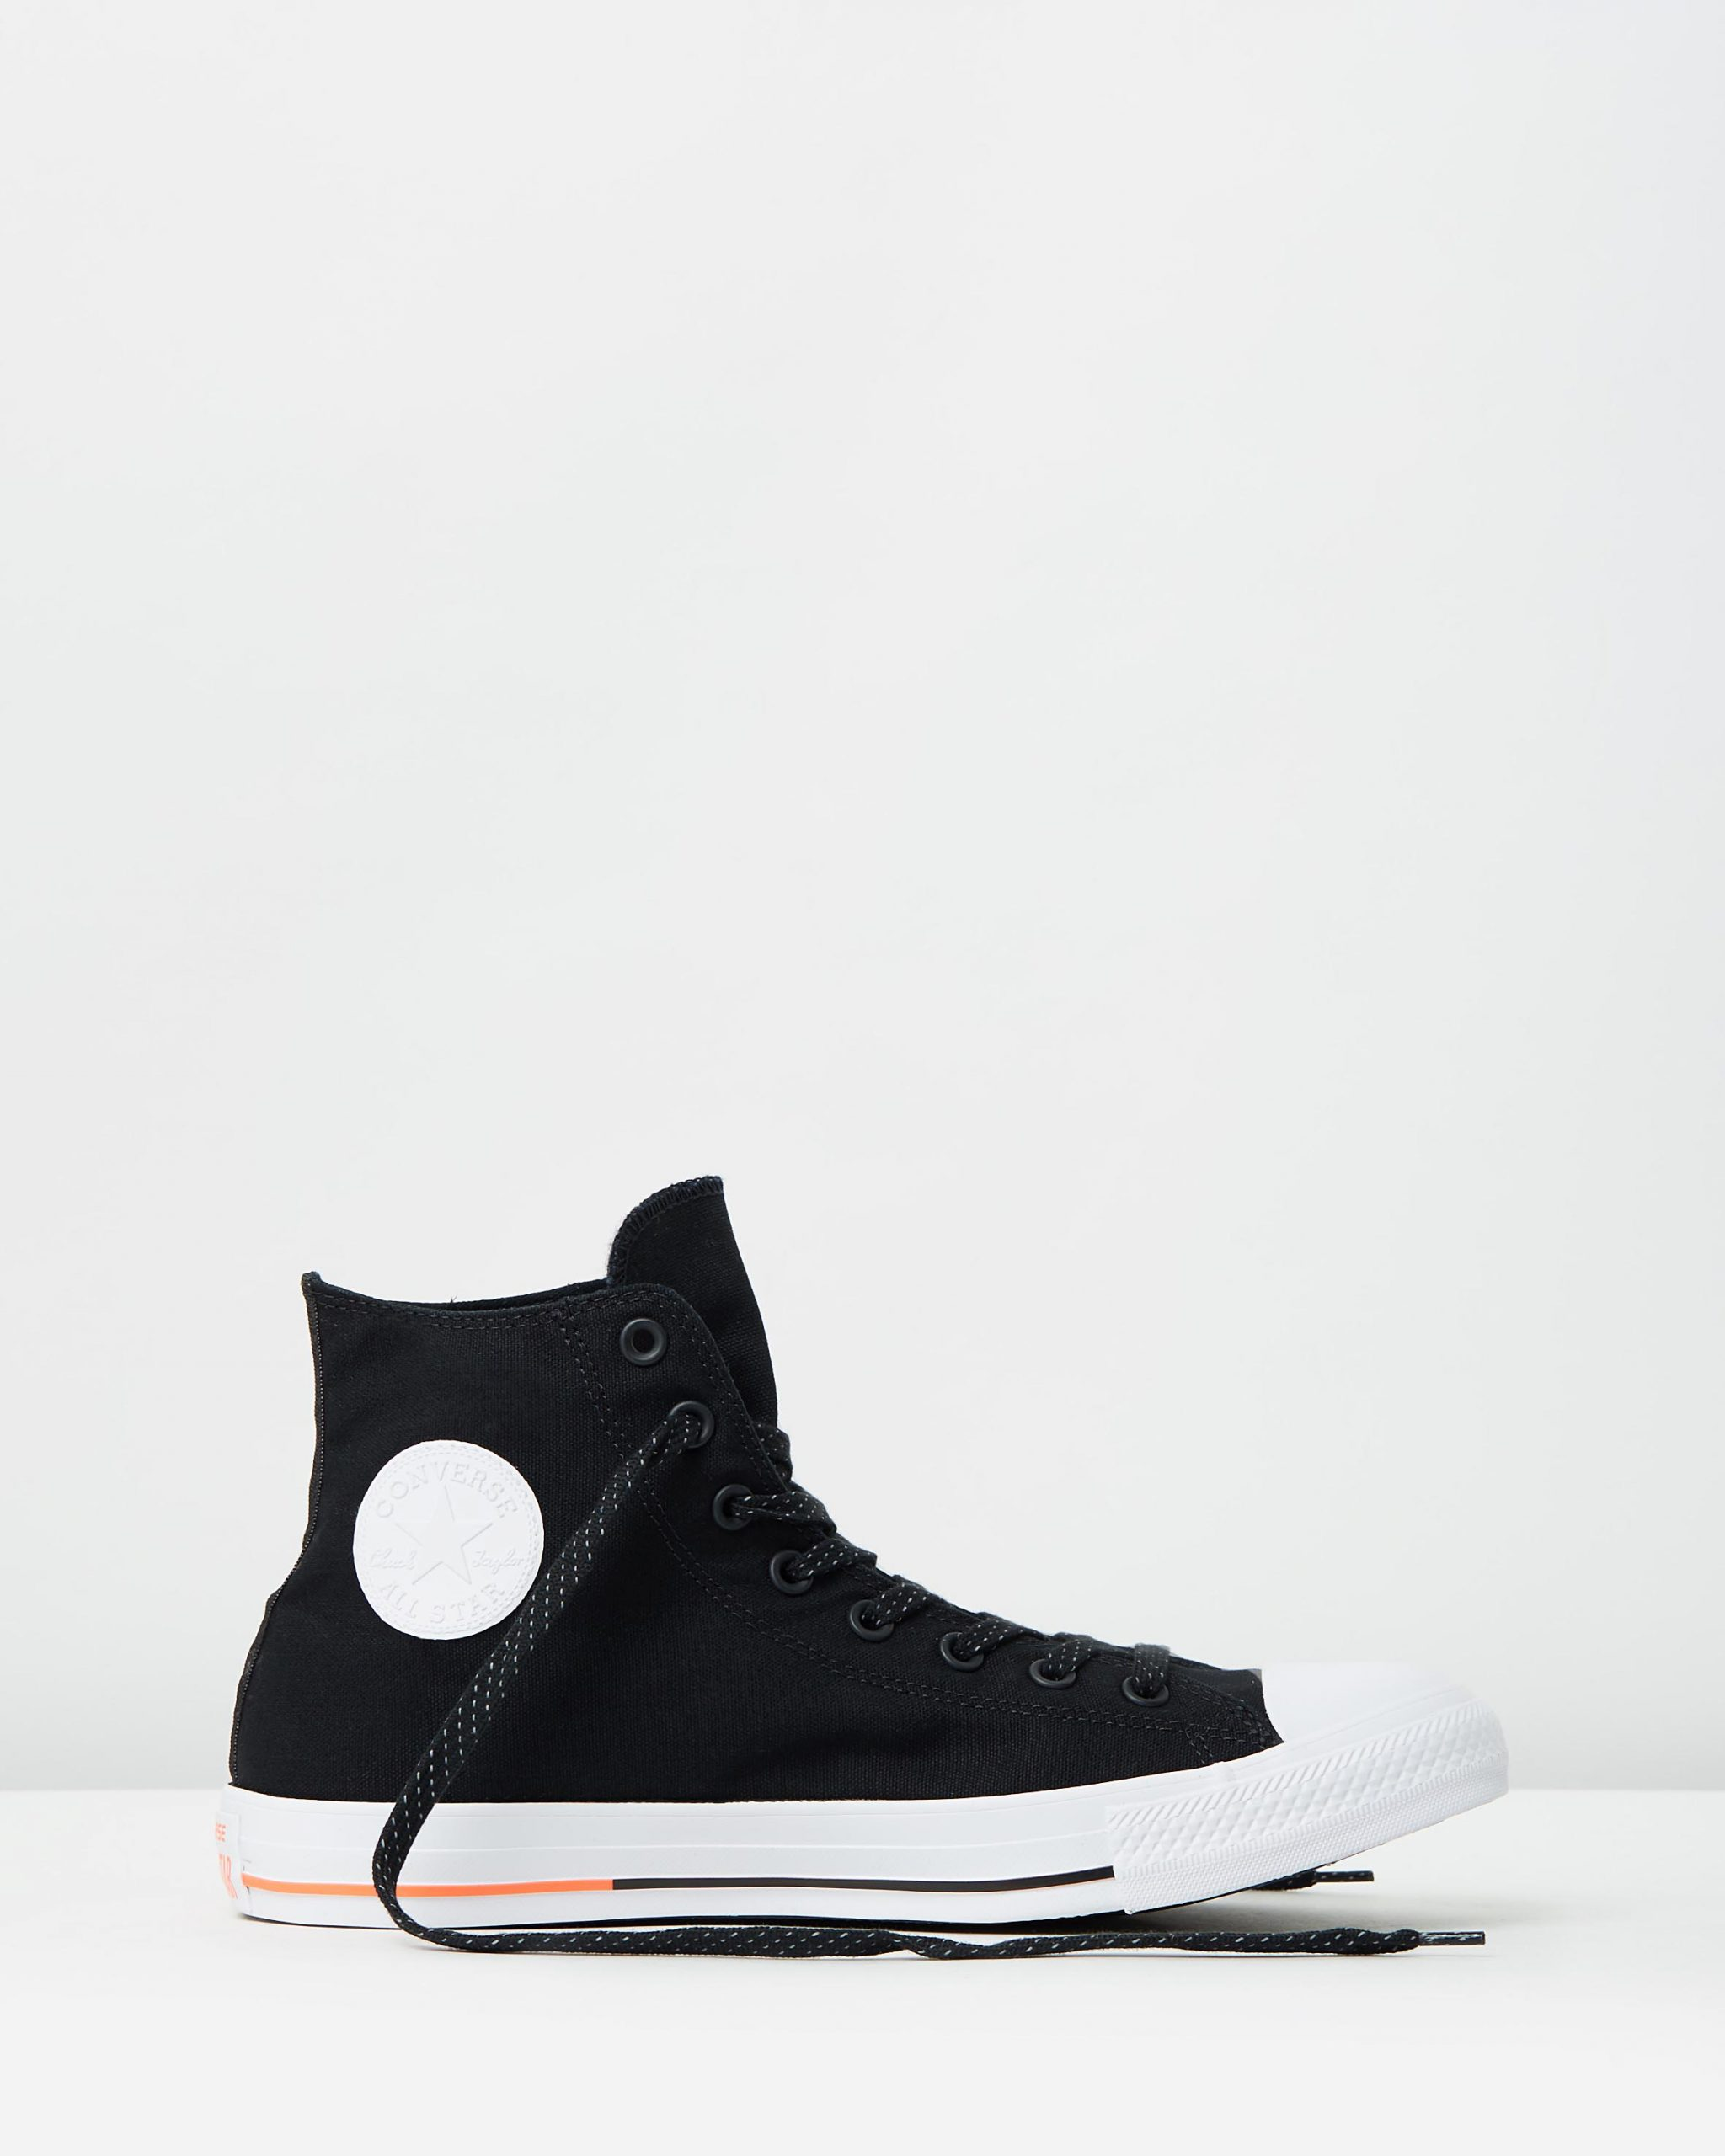 Converse Chuck Taylor All Star Hi Shield Canvas Black, White & Lava